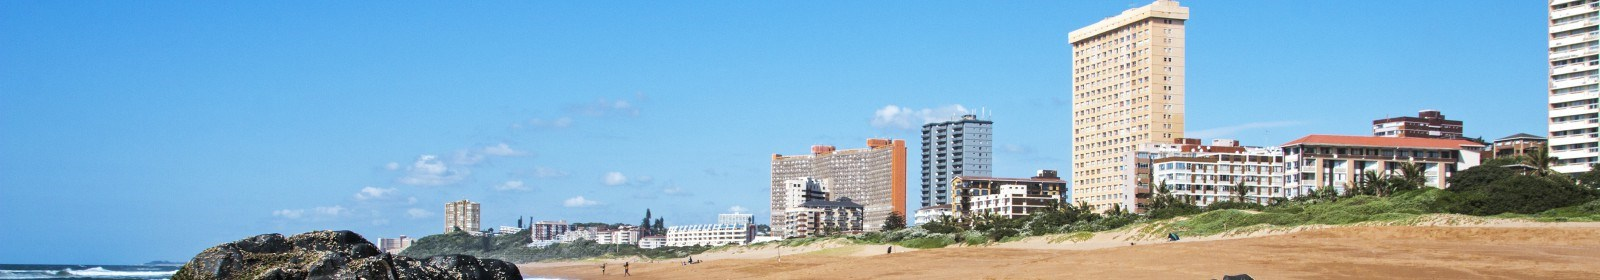 Savvy investors to capitalise on development in Amanzimtoti